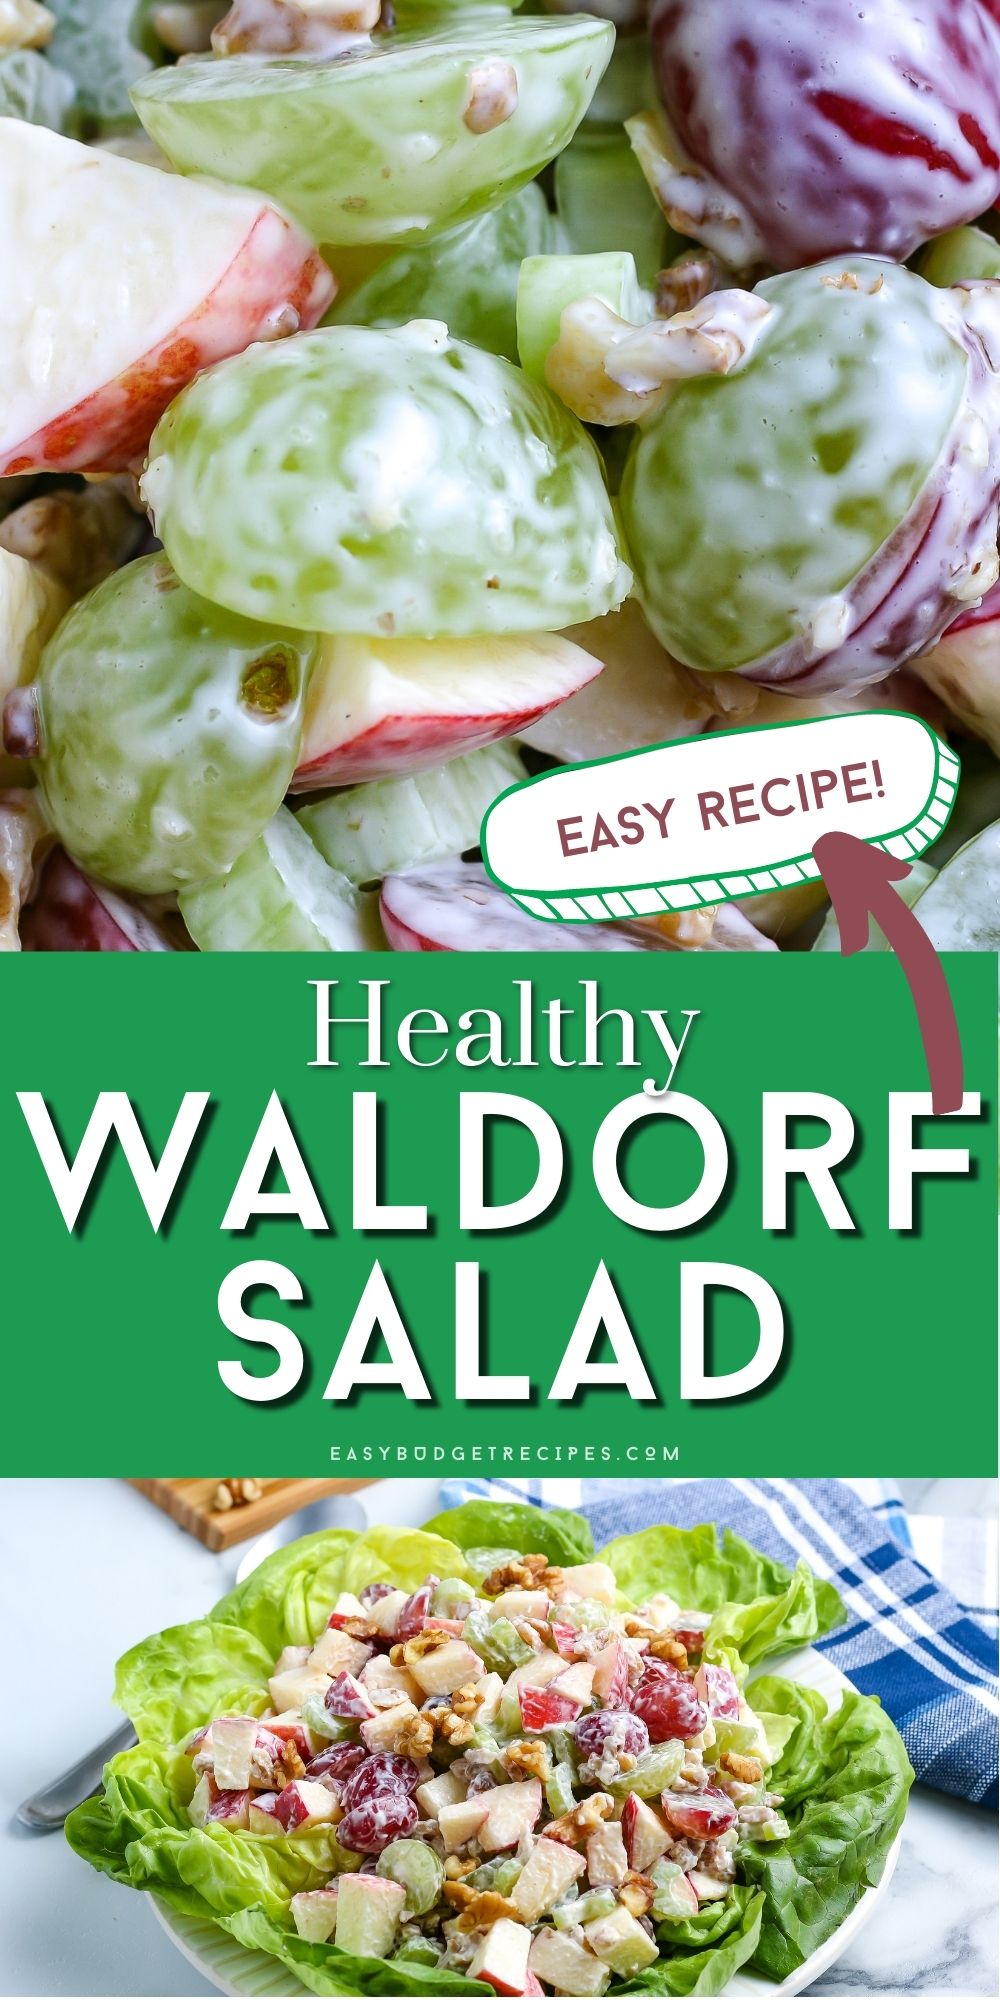 This Healthy Waldorf Salad recipe is easy to make and a tasty side dish for Thanksgiving, Christmas, or any meal. We also love adding chicken to it for a healthy lunch.  via @easybudgetrecipes